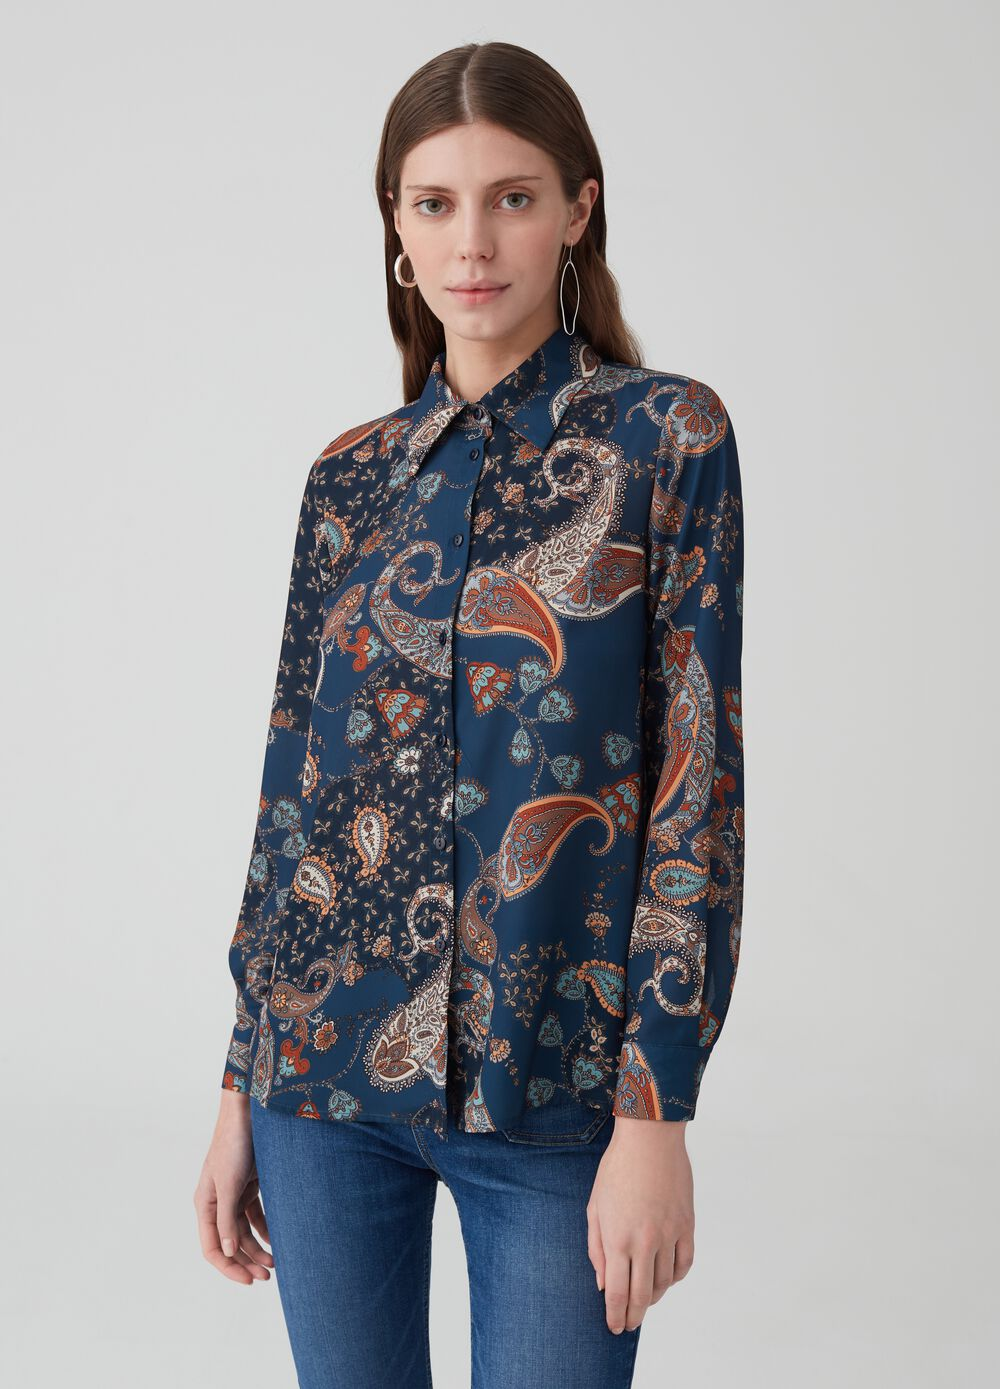 Paisley shirt with bluff collar